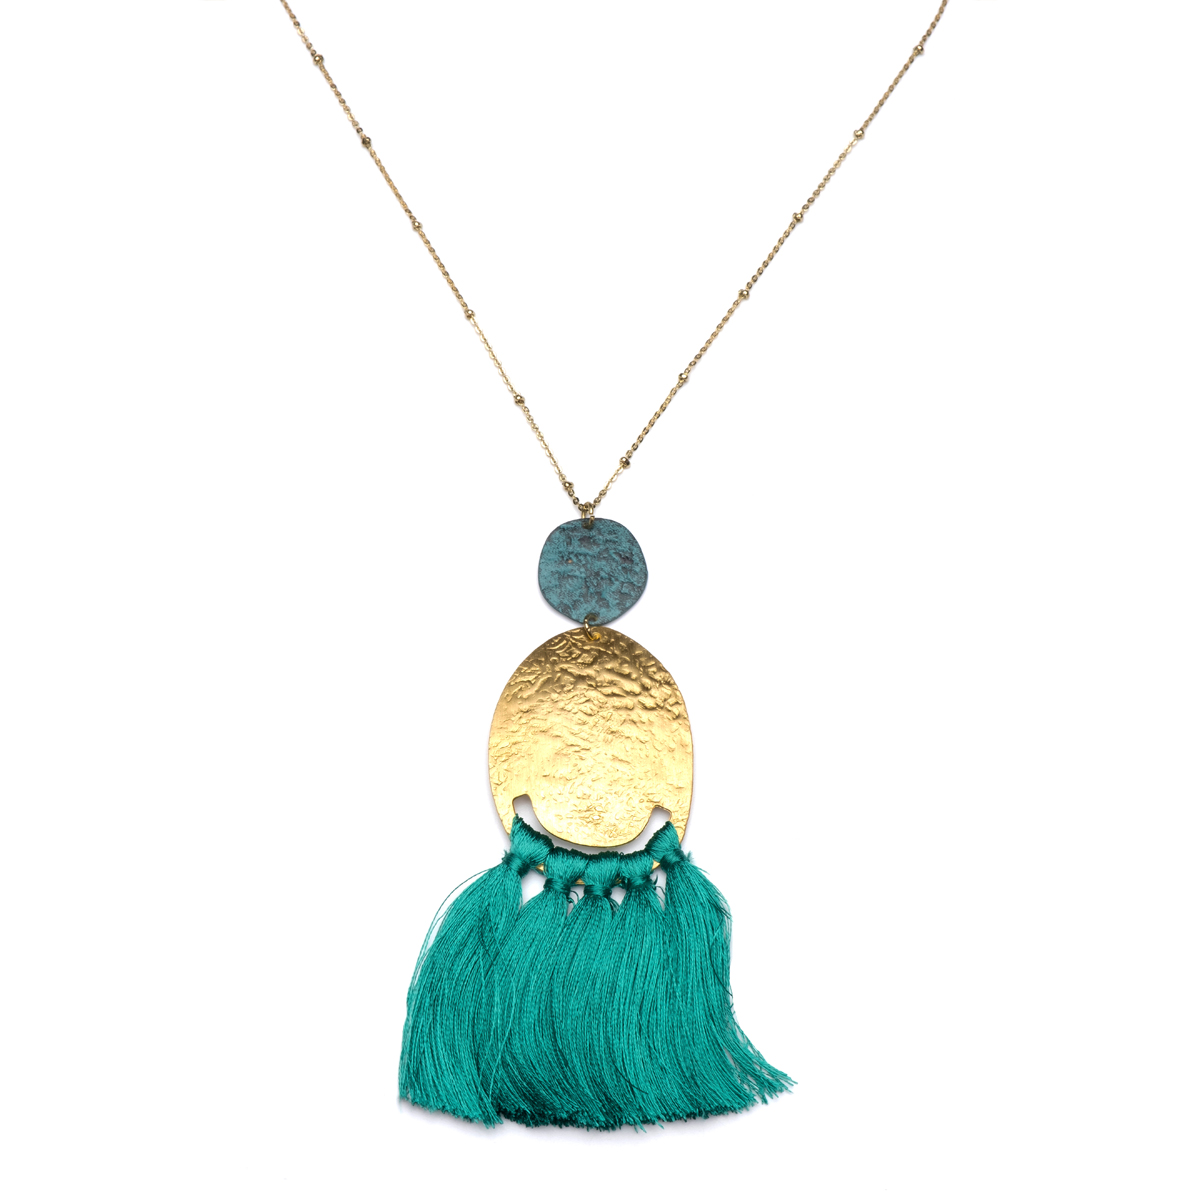 JM550_Nihira_Tassel_Necklace_Teal.jpg